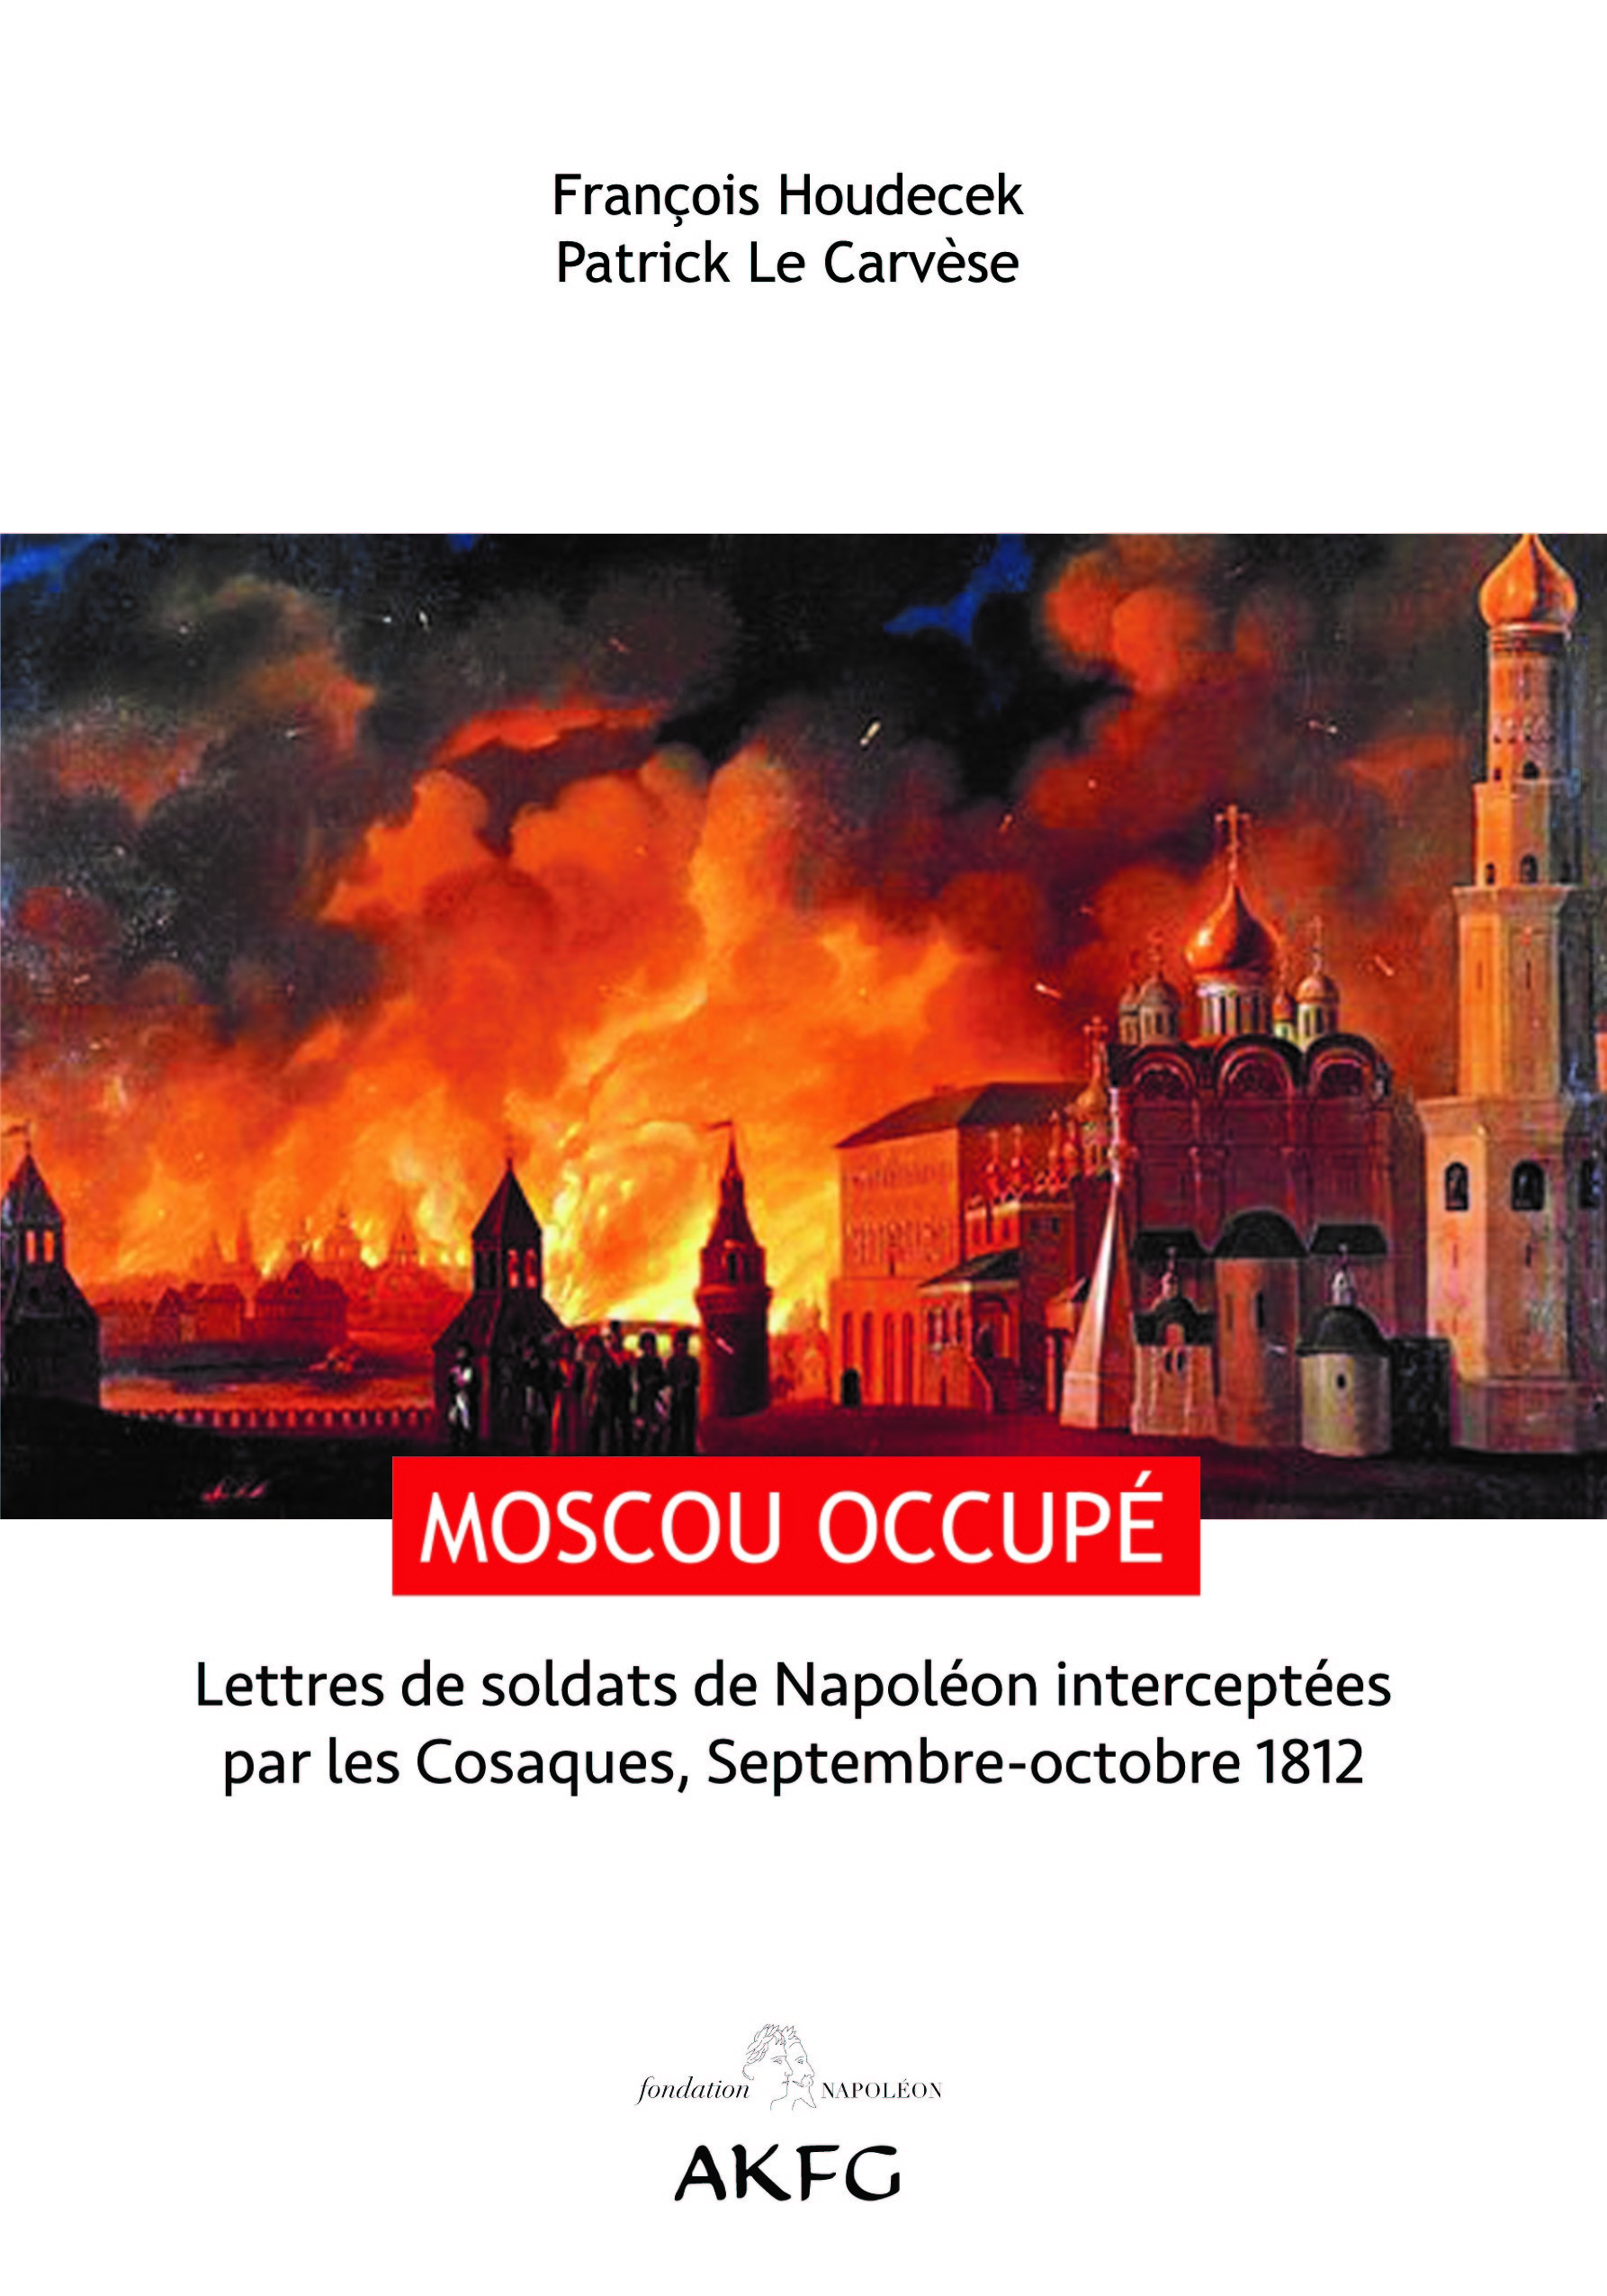 MOSCOU OCCUPE